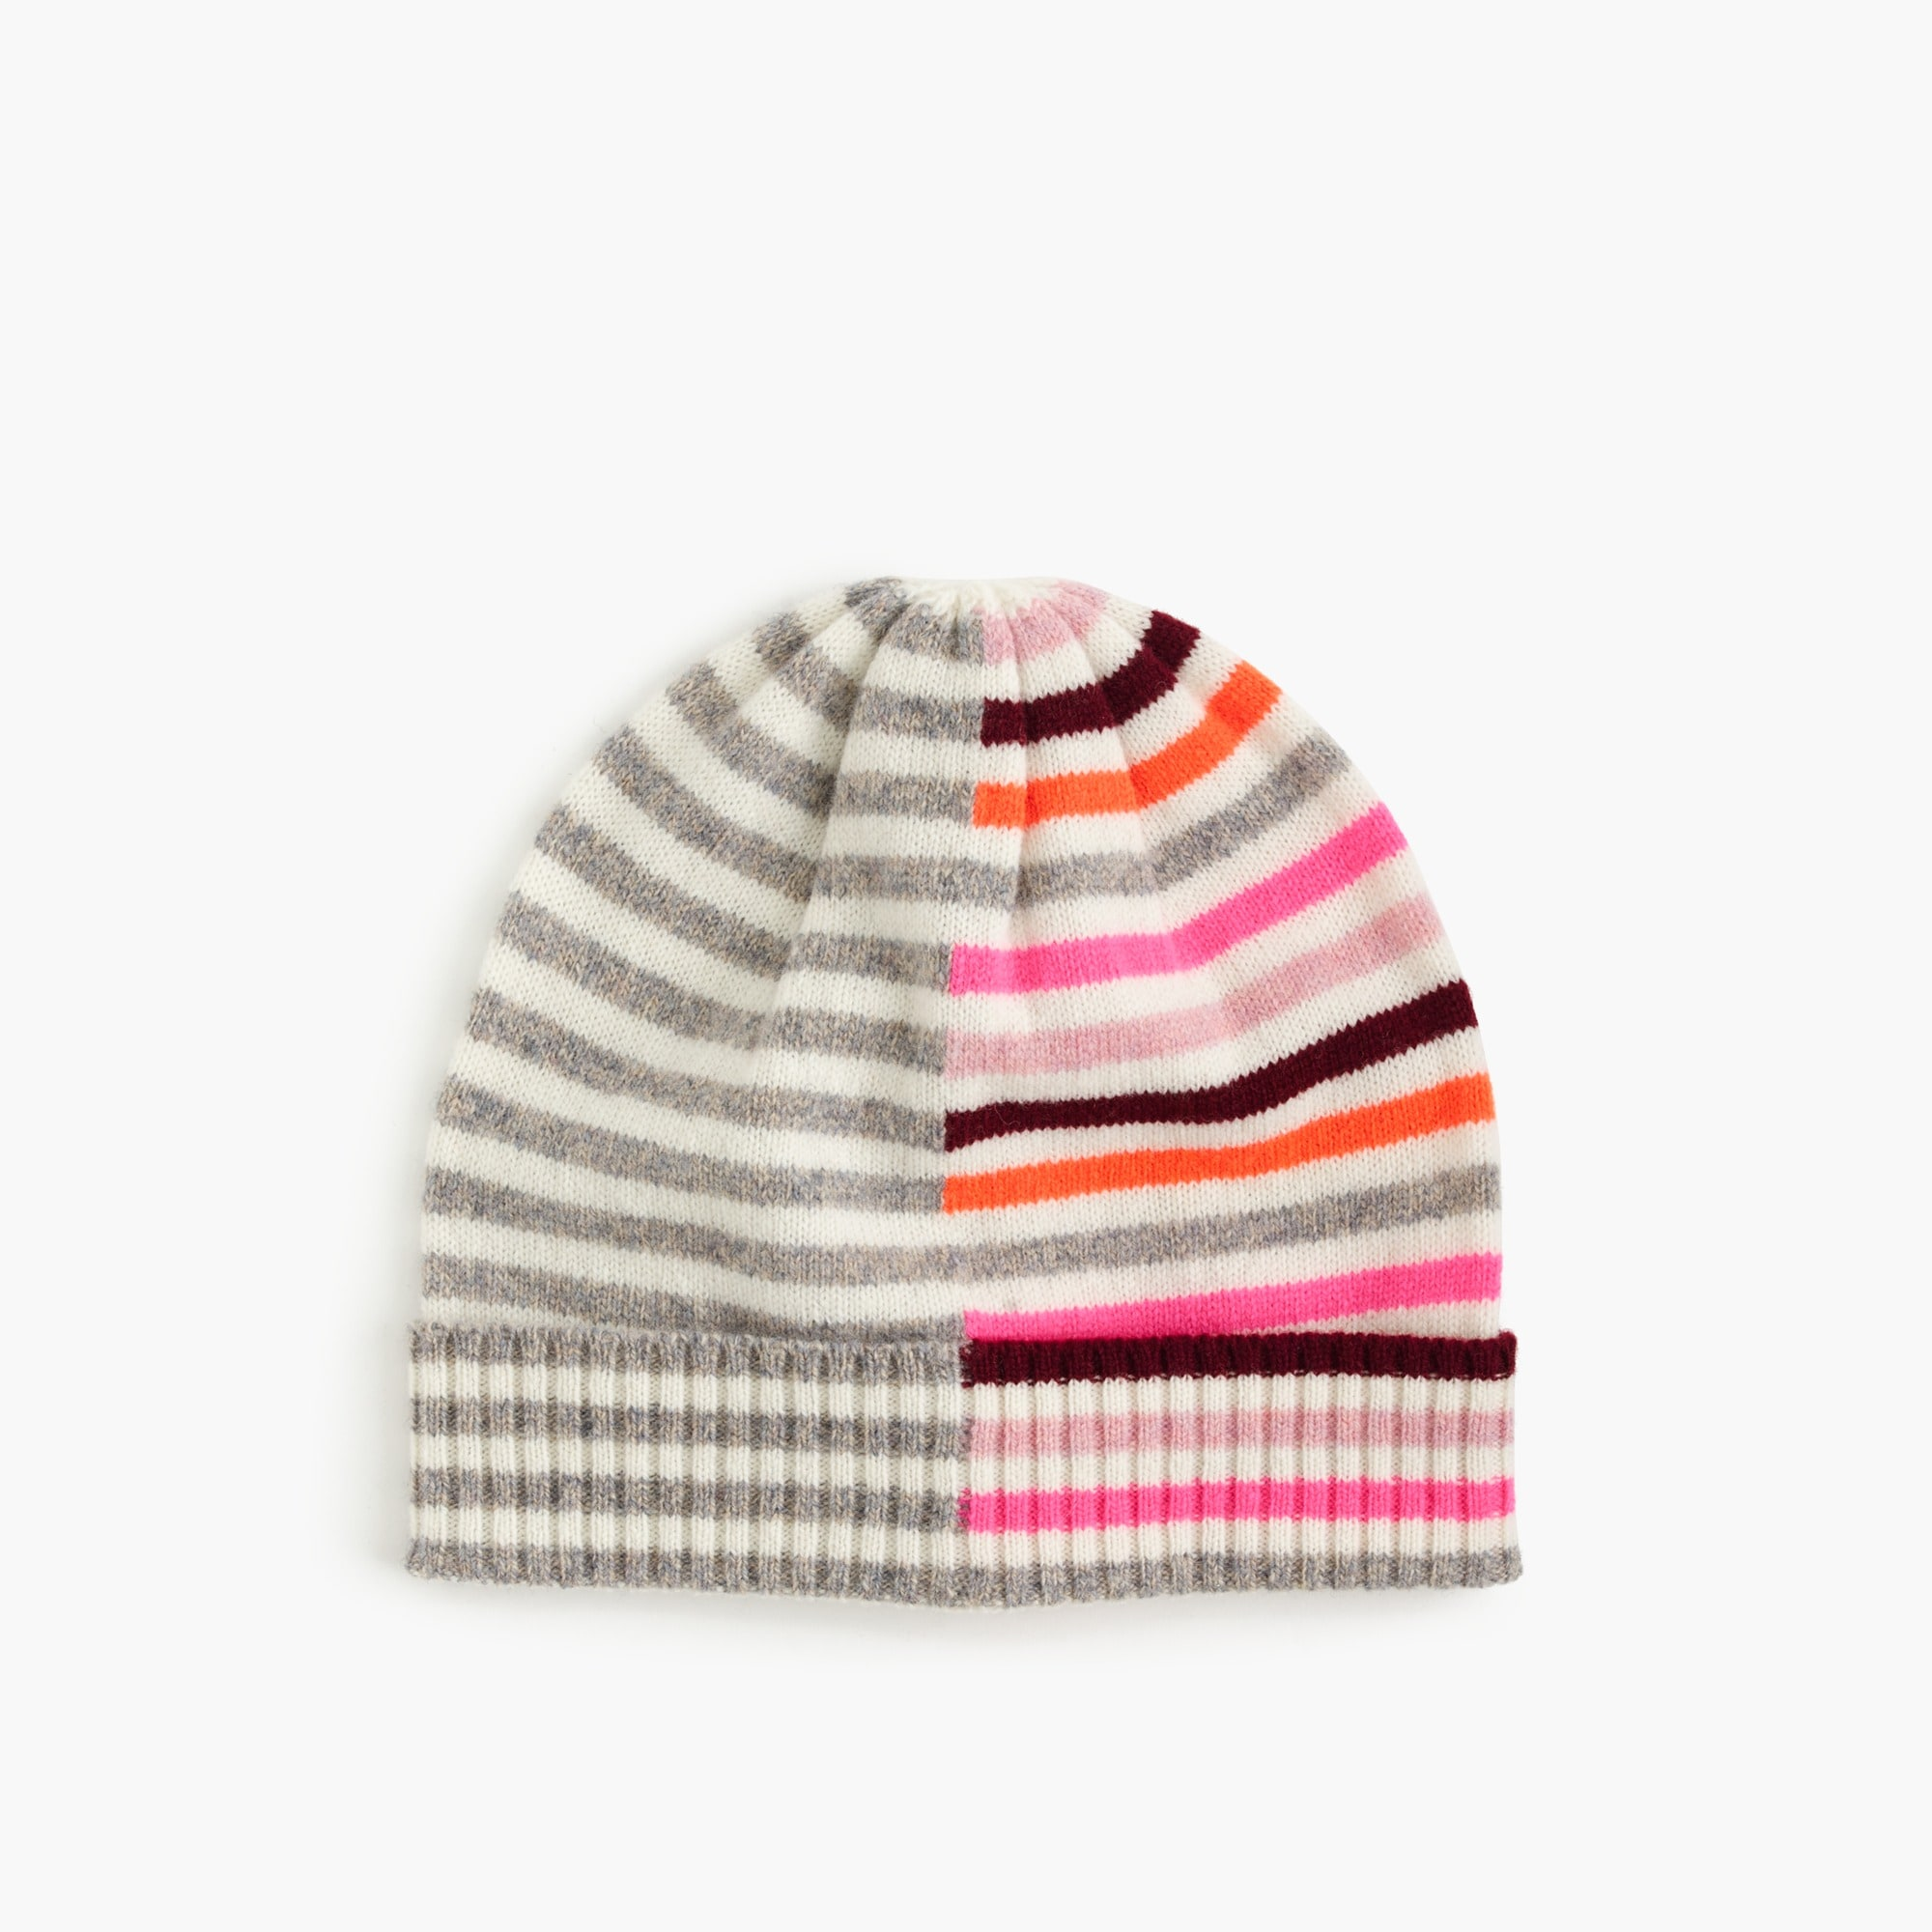 Image 1 for Mixed-stripe merino wool beanie hat